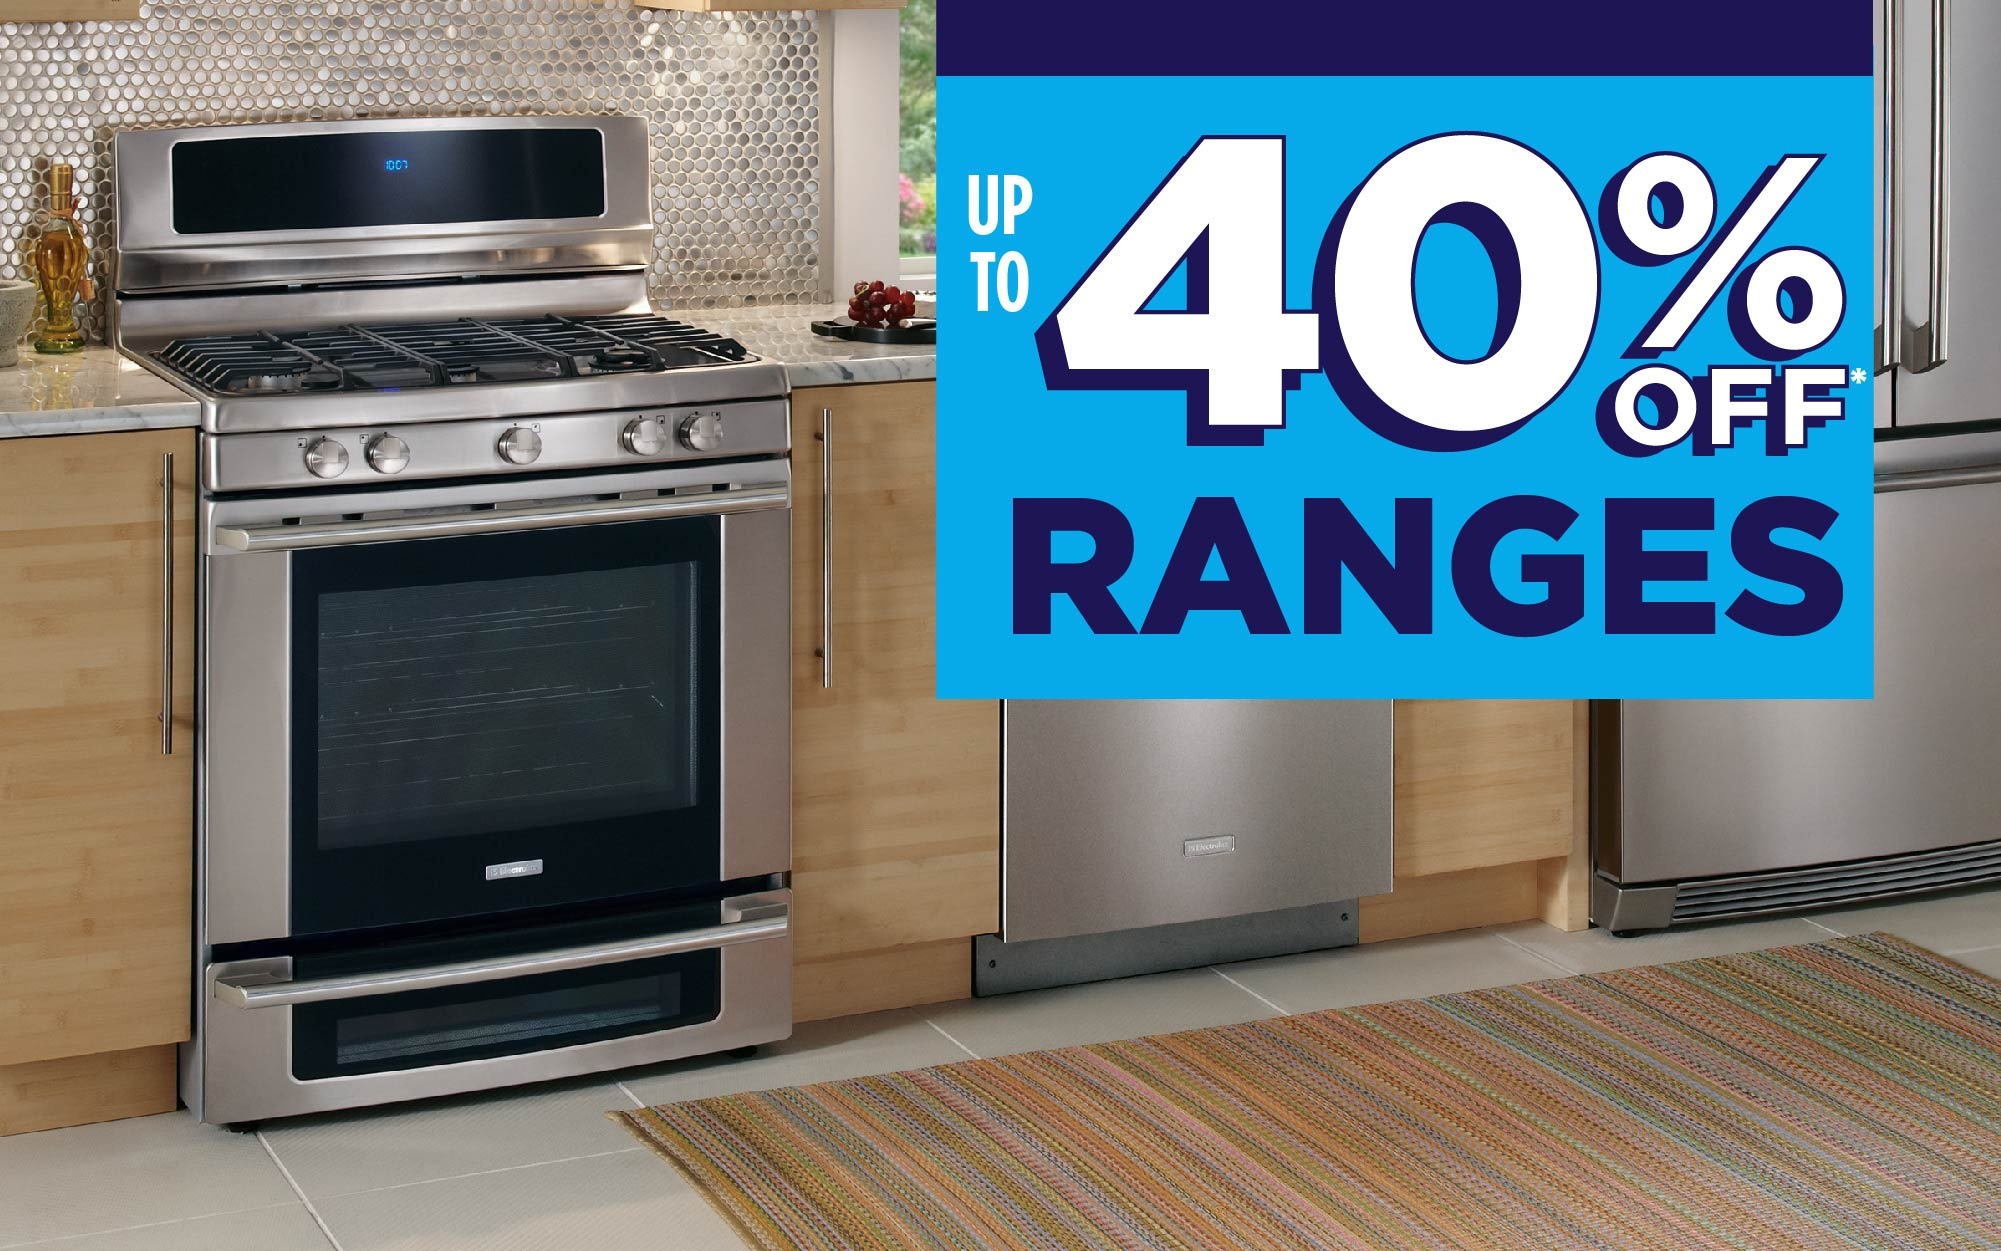 up to 40% Off Ranges!